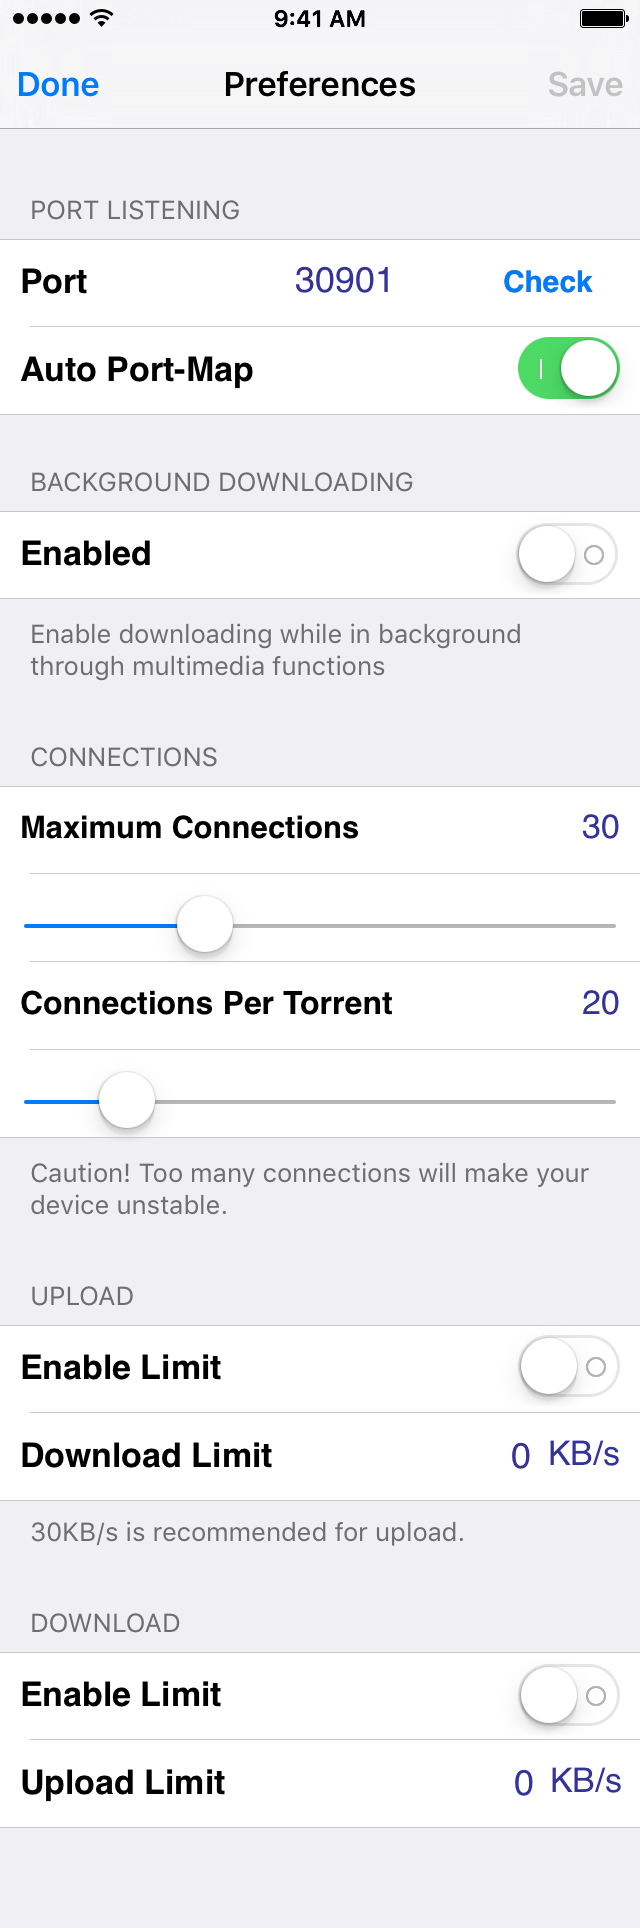 iTransmission 5 launches in Cydia, enables Bittorrent